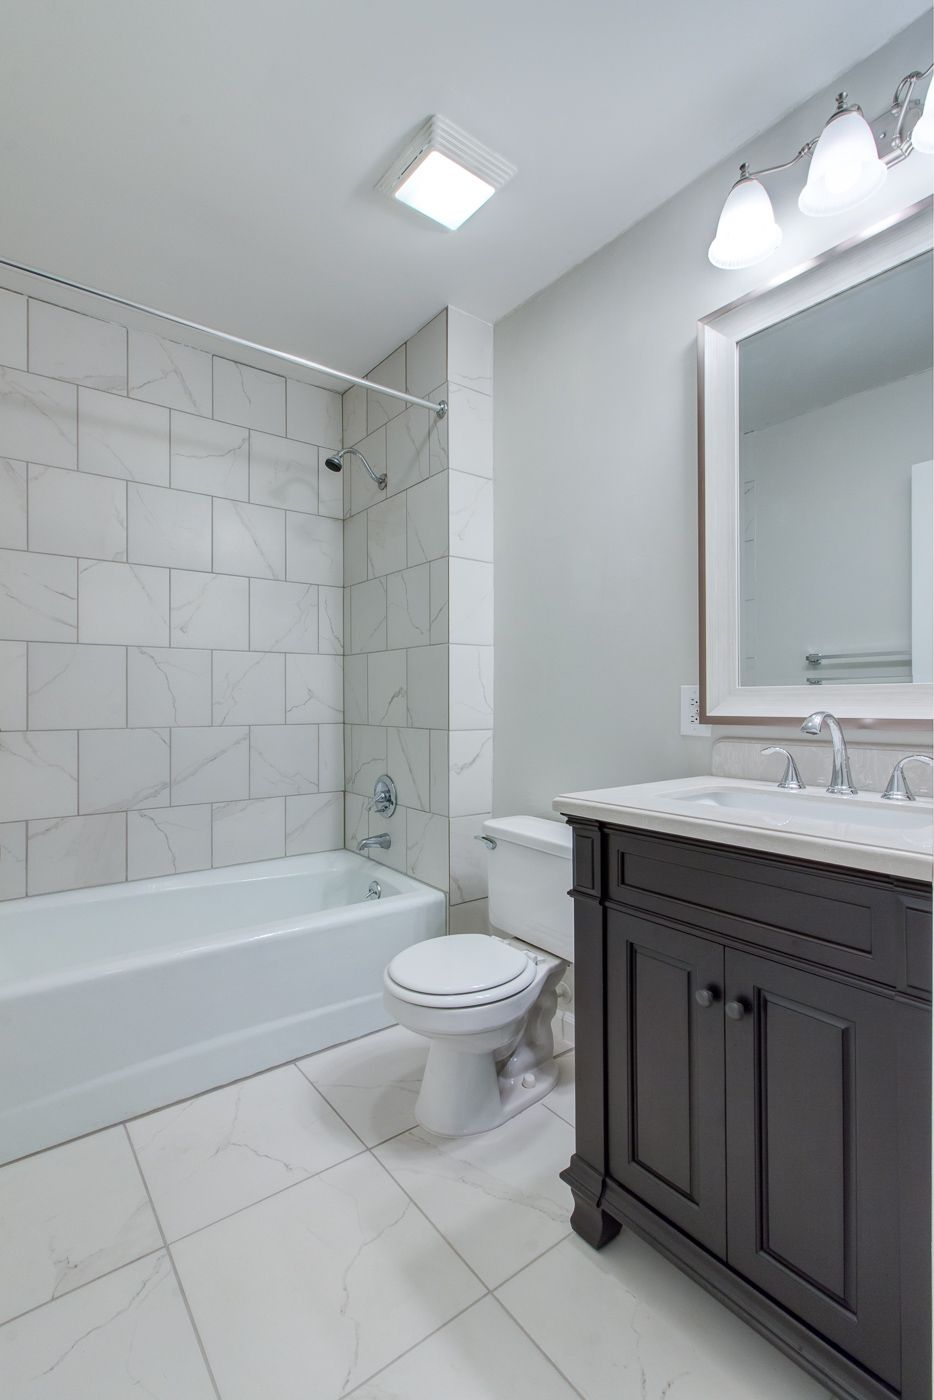 Bathroom Remodel By Suzanne D. Of Raleigh, NC. Renovated A Rental Property  With